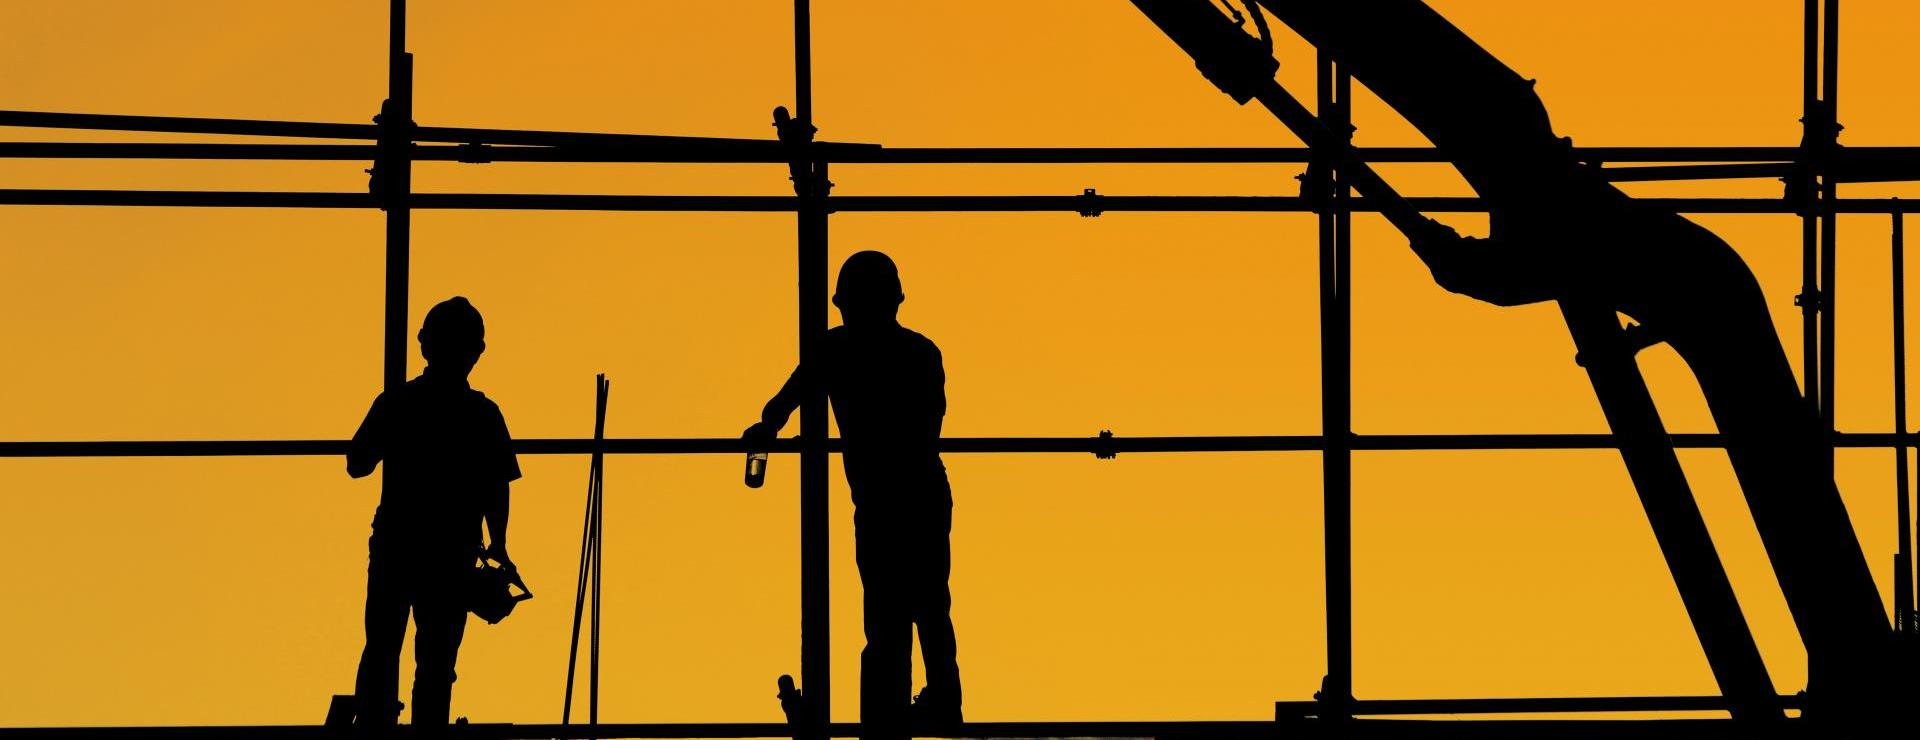 silhouette of two construction workers in front of metal frame with yellow background